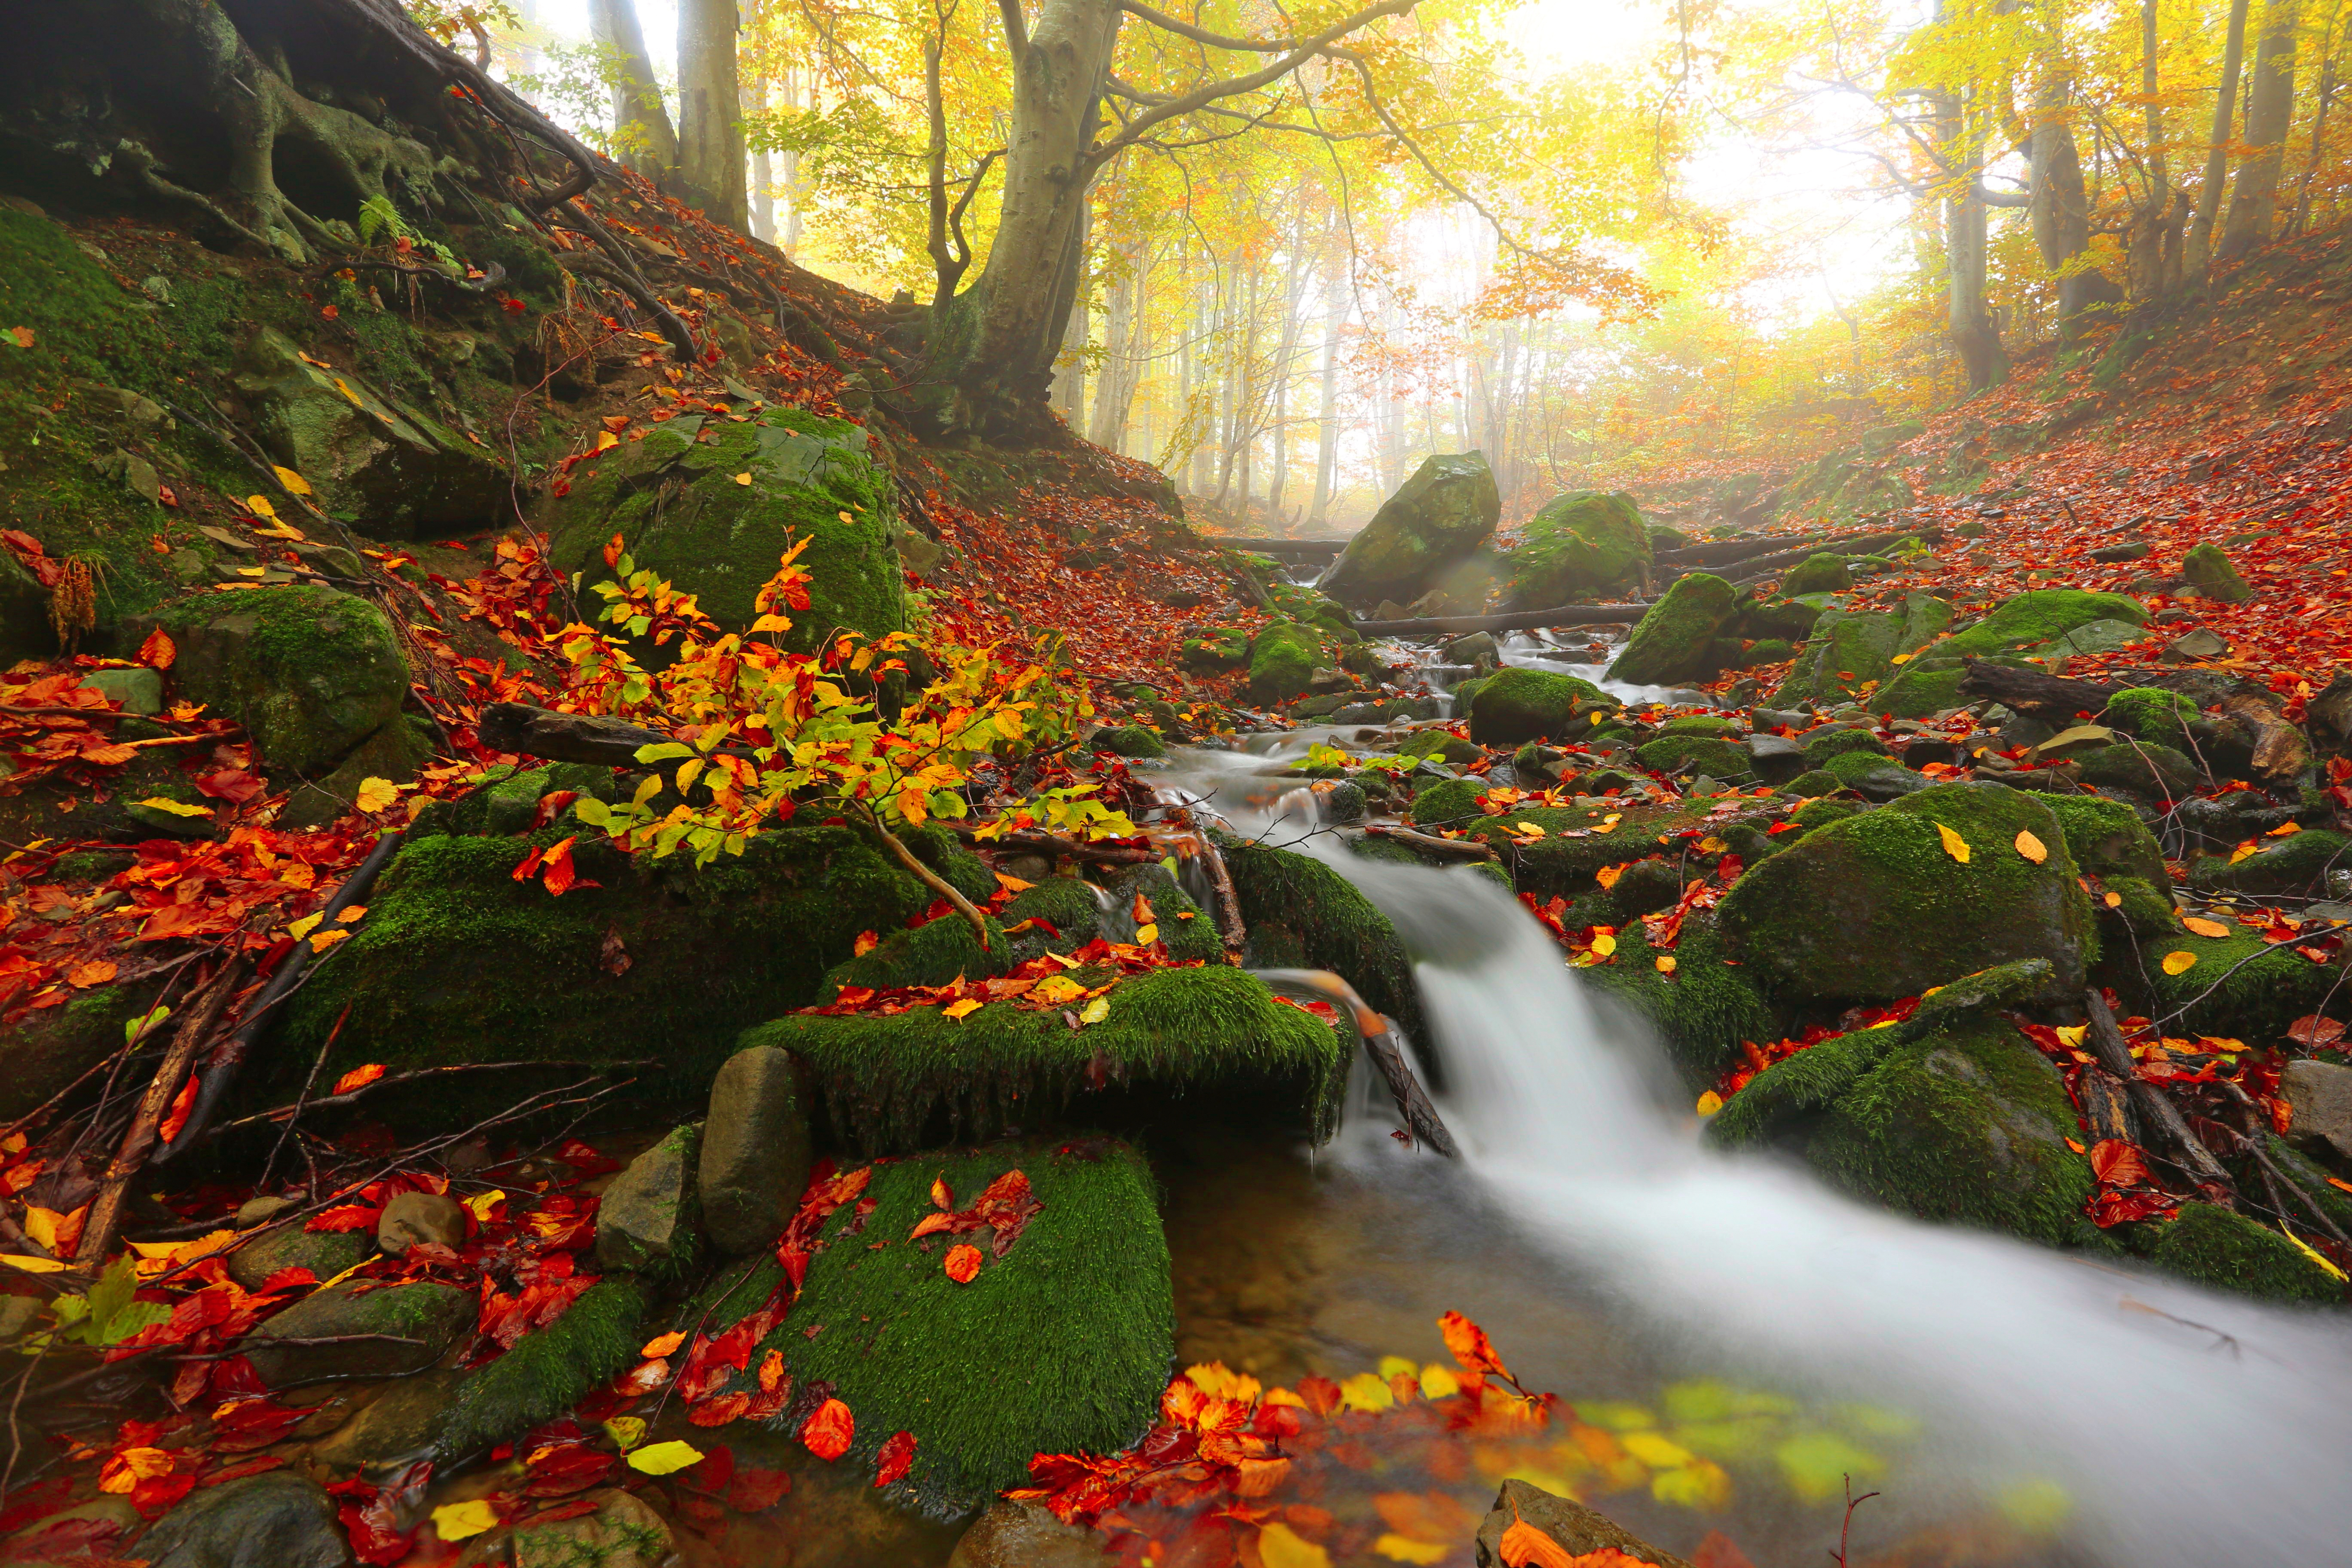 Fall colors in the mountains with flowing creek